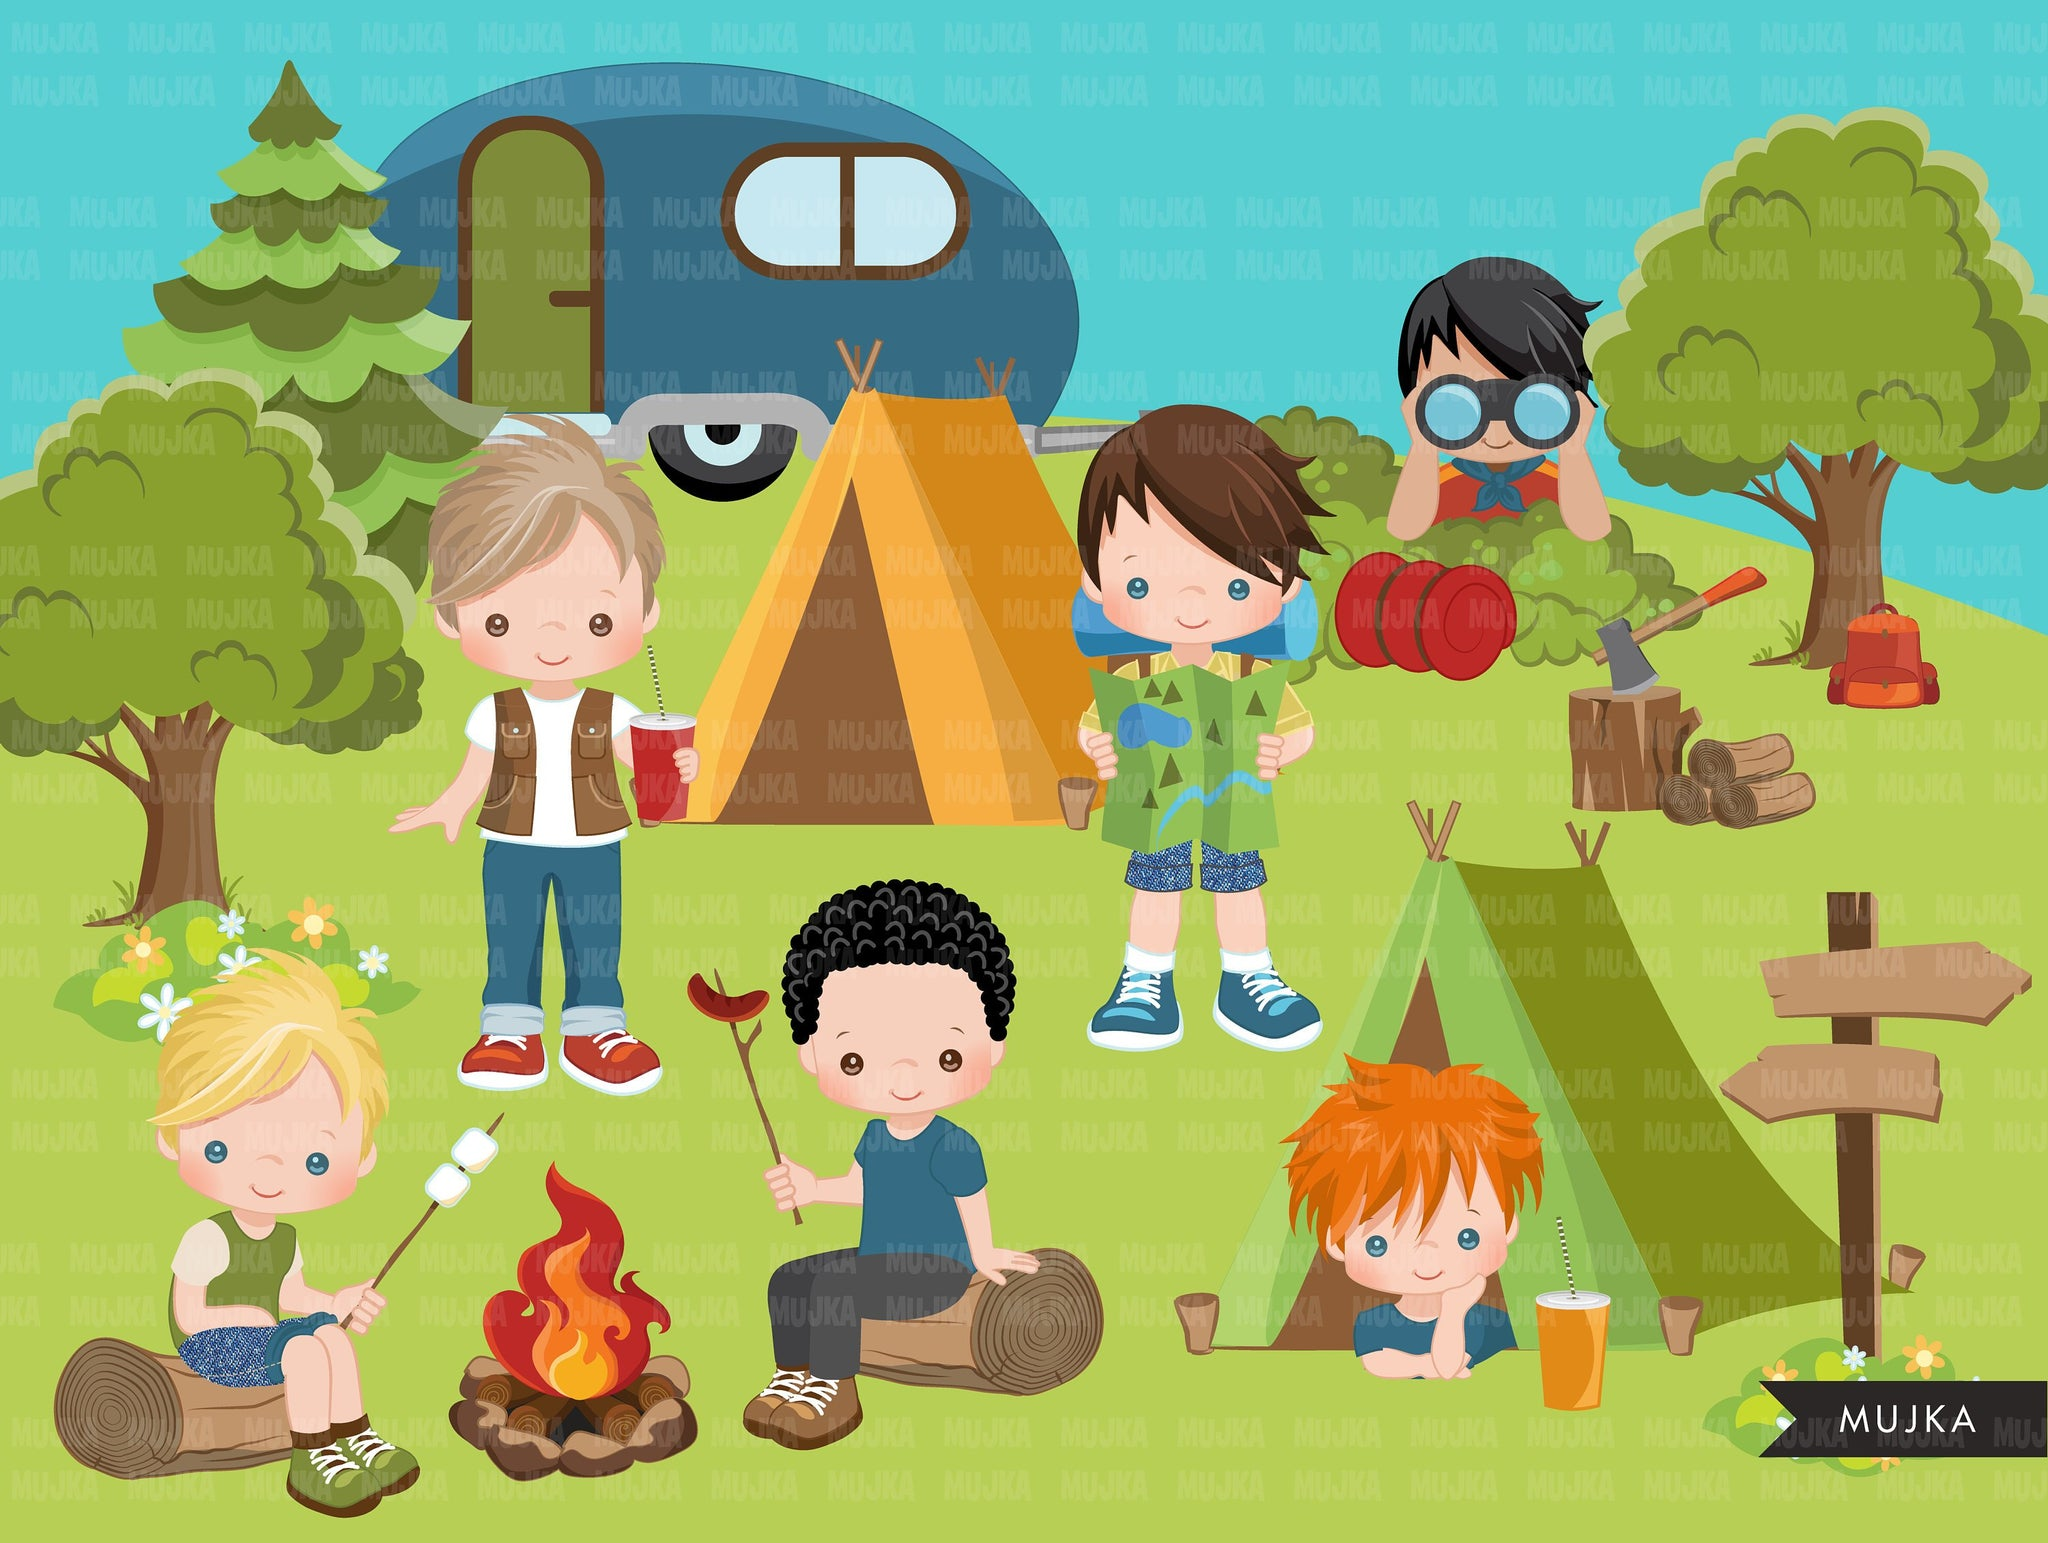 Scouts camping clipart, campground, campfire, tent, camper van, forest background, trees, outdoor graphics, commercial use Png clip art